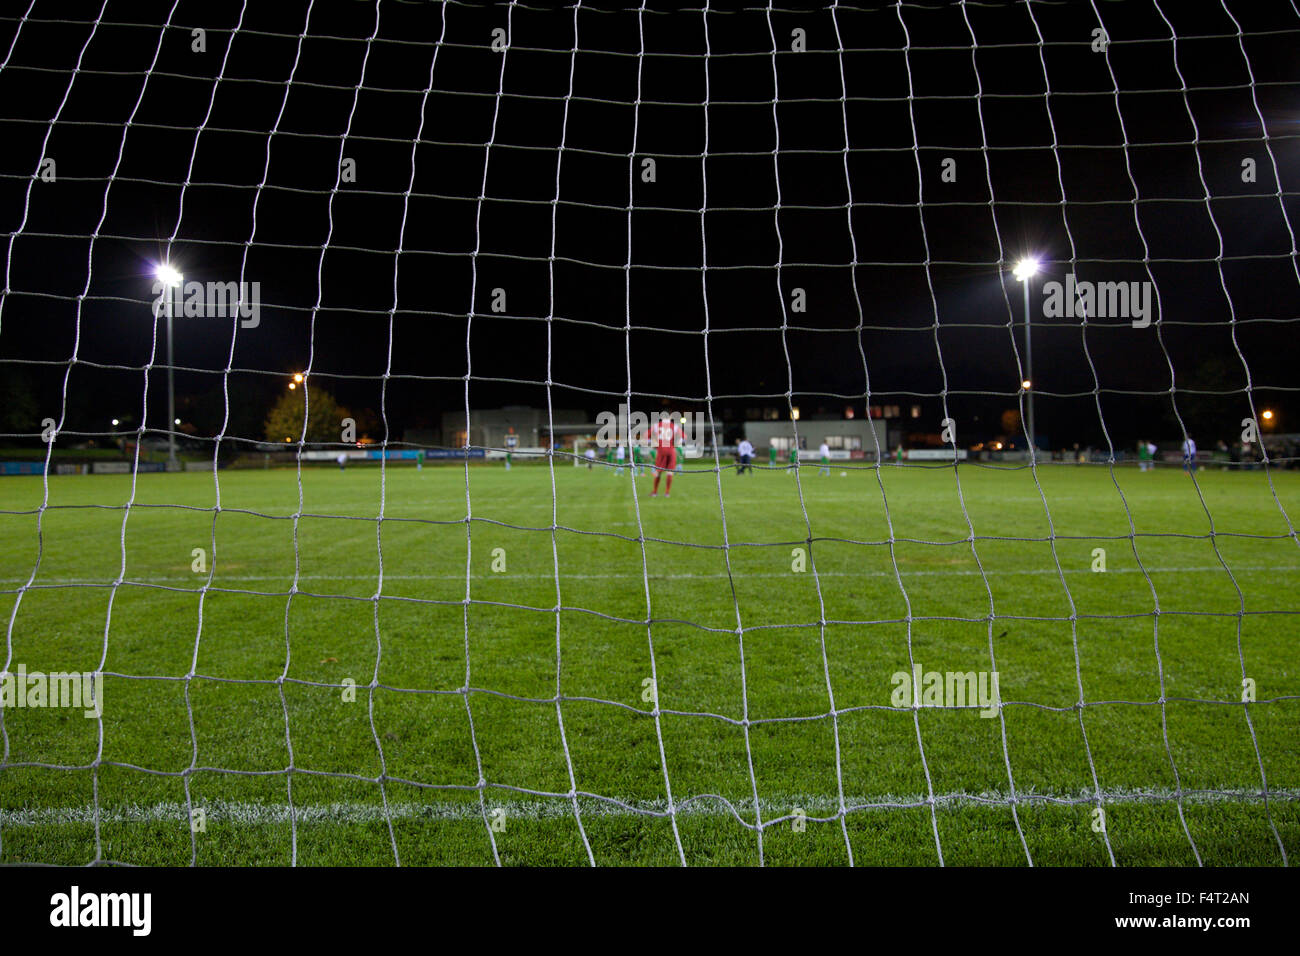 View of football pitch from behind the goal. - Stock Image